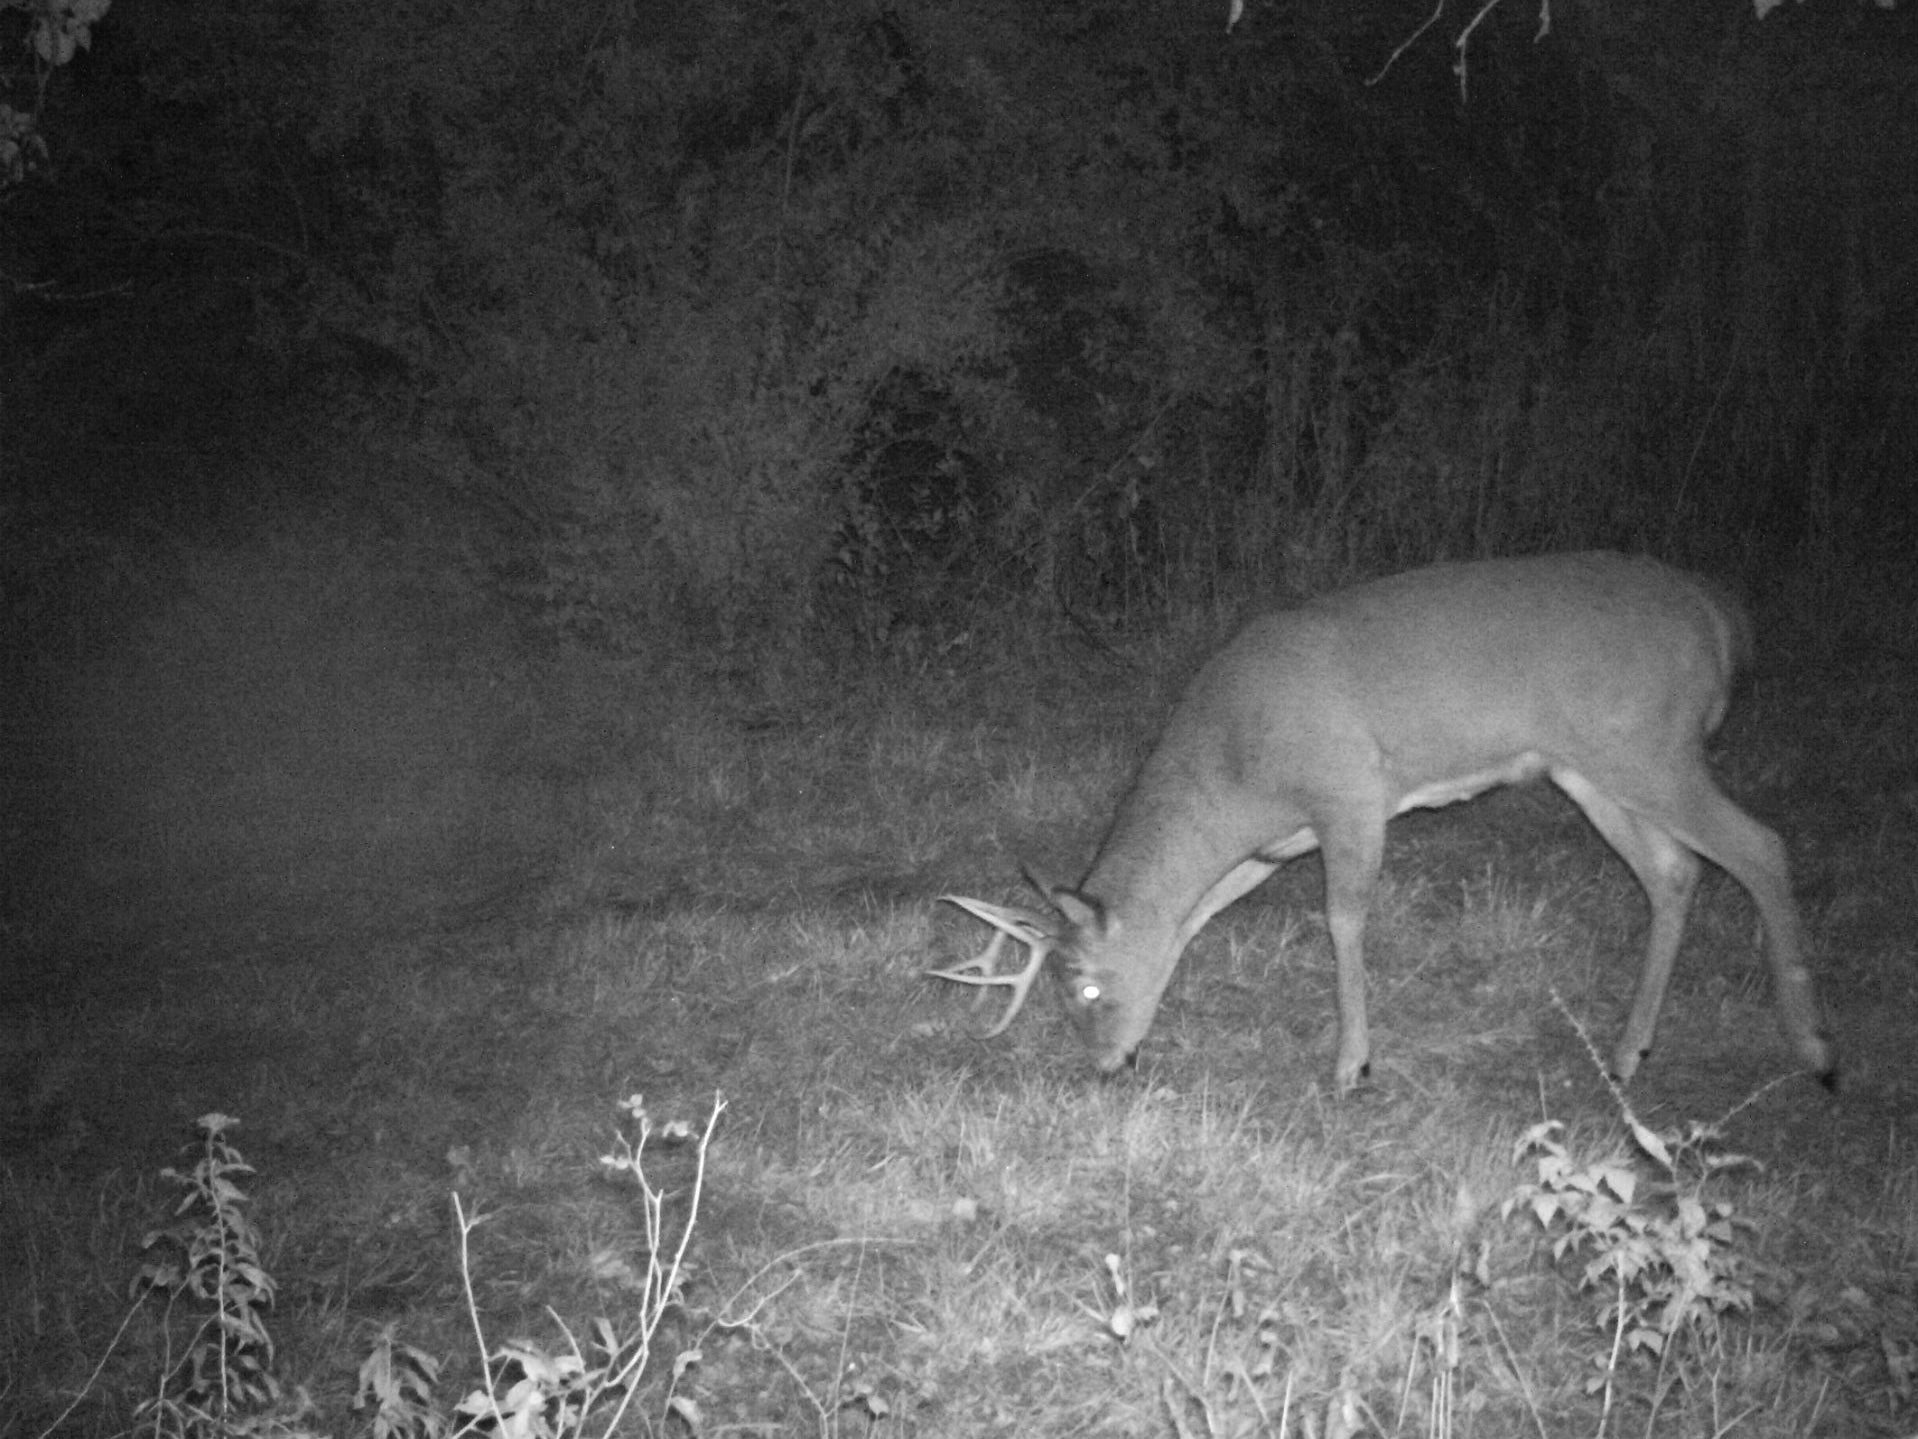 Rut Report: Acorns Are the Ticket in the Northeast Right Now